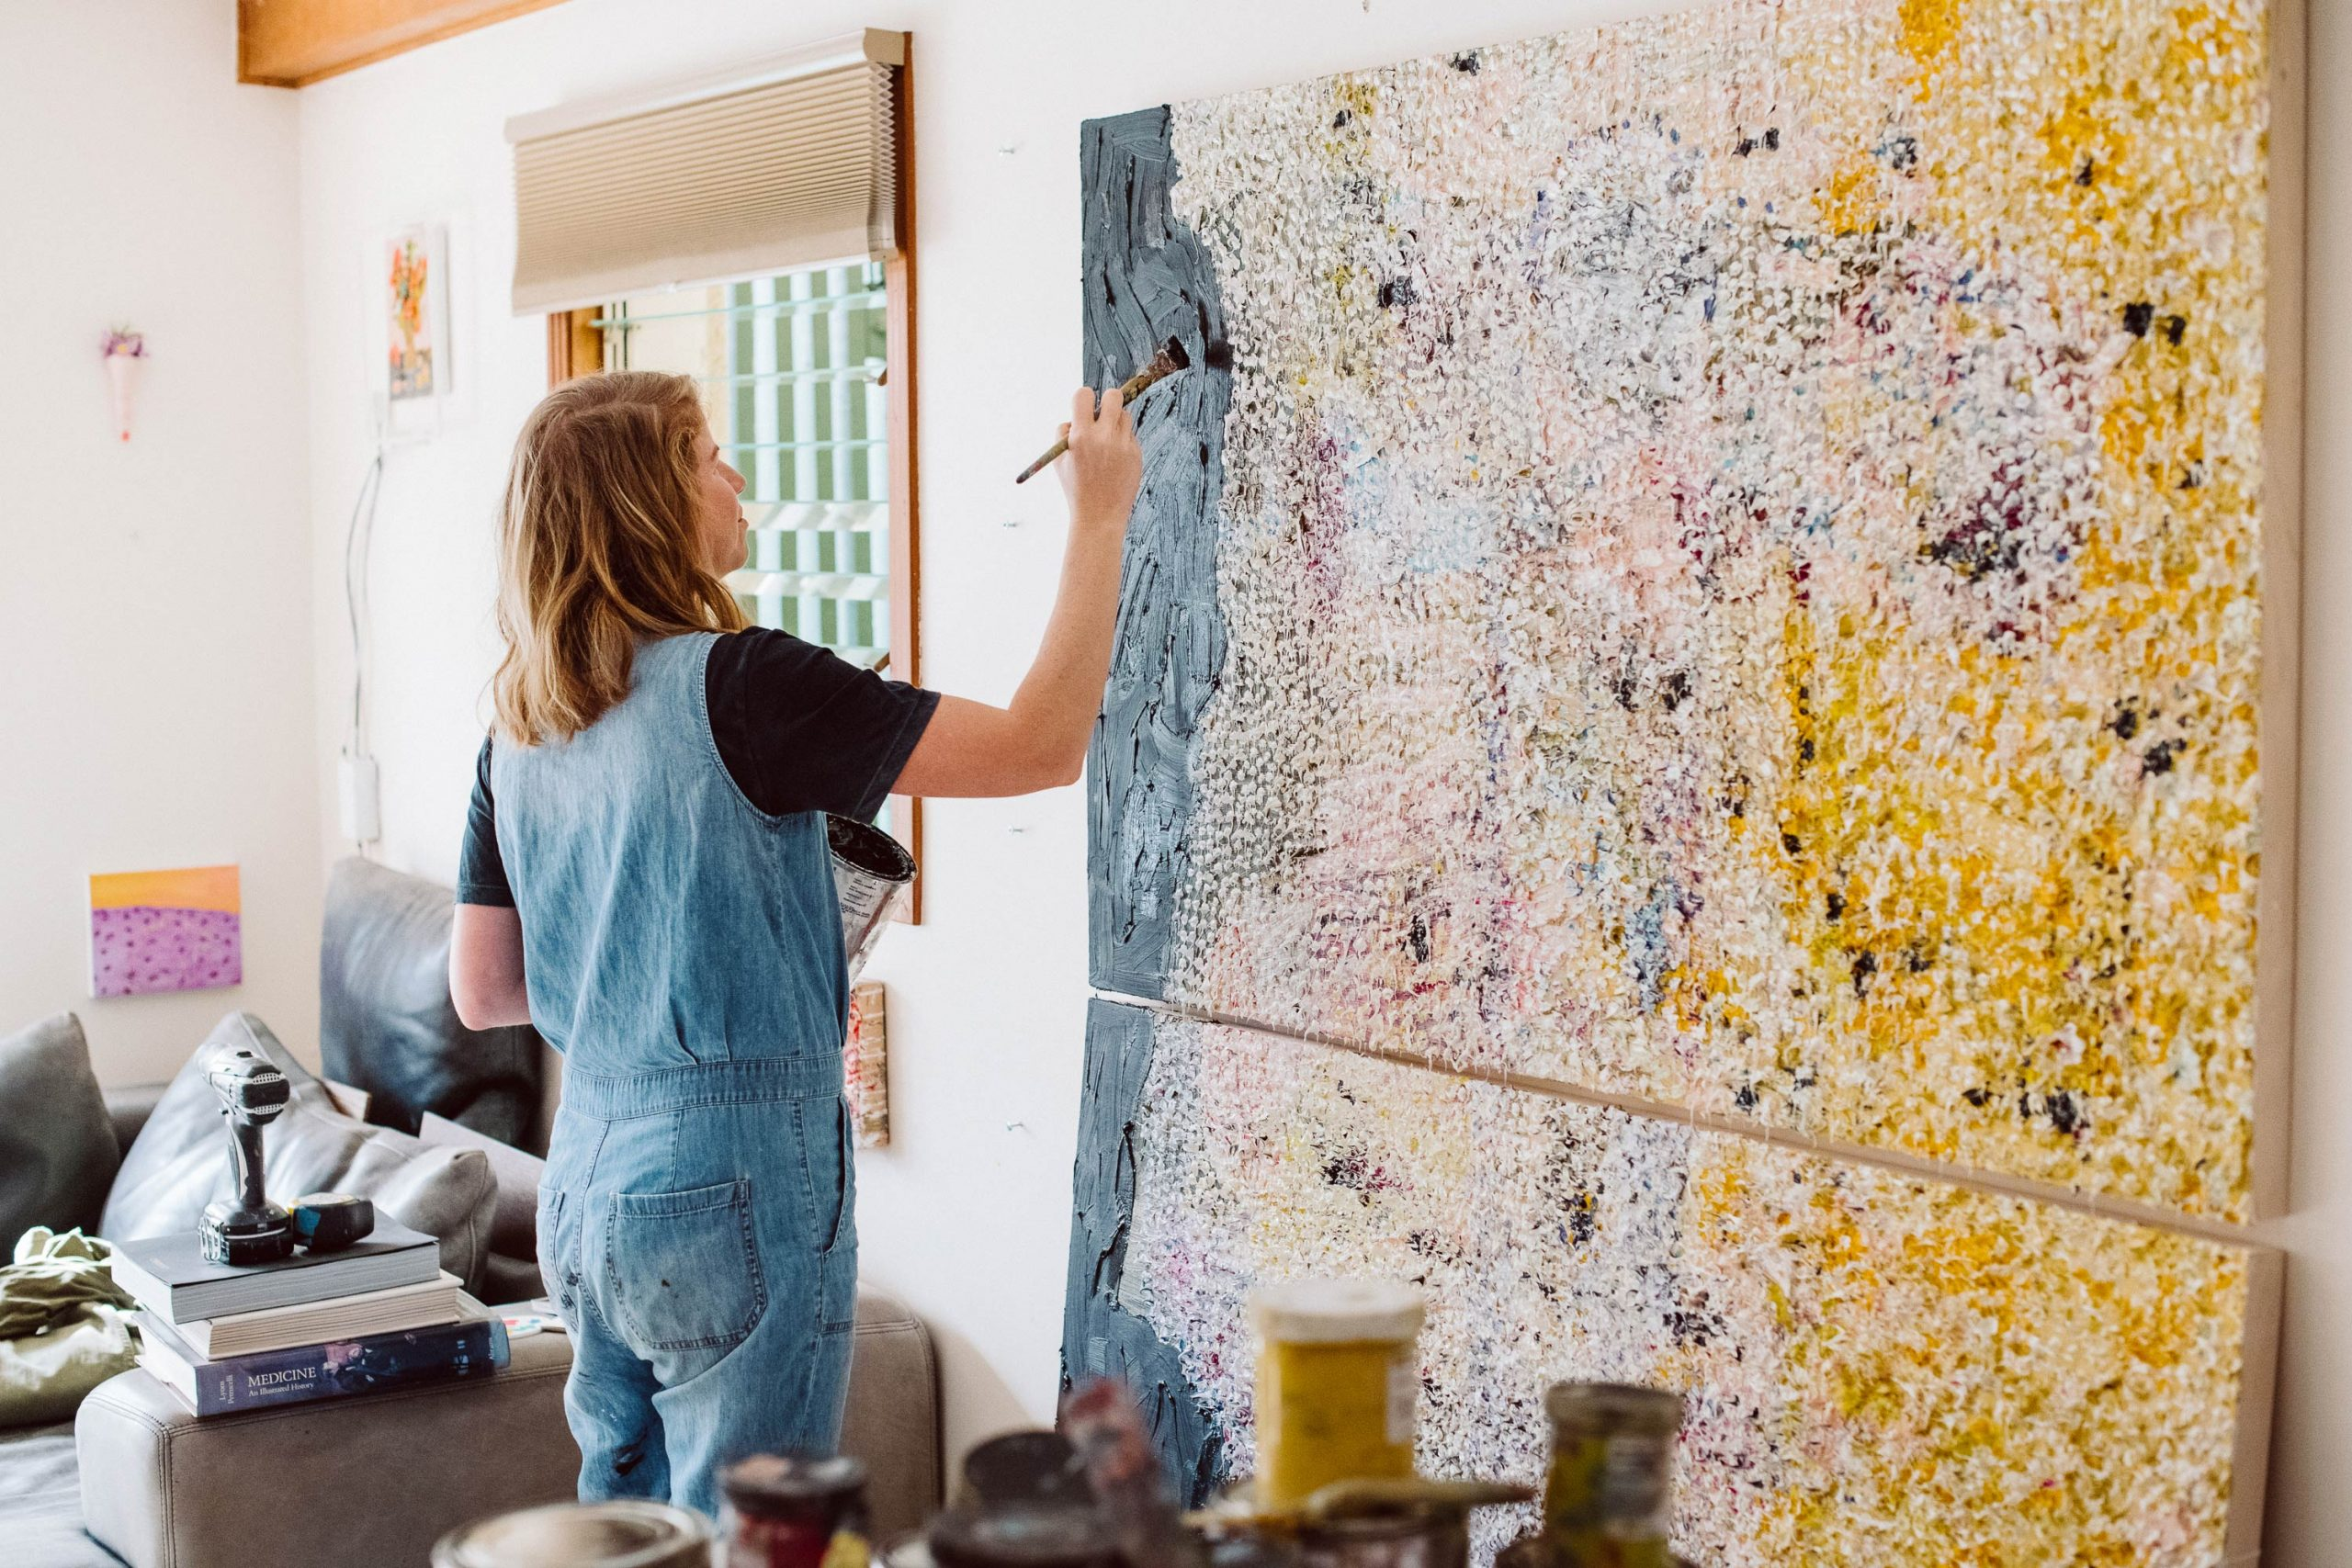 Vanessa Prager painting a large, multicolored canvas.